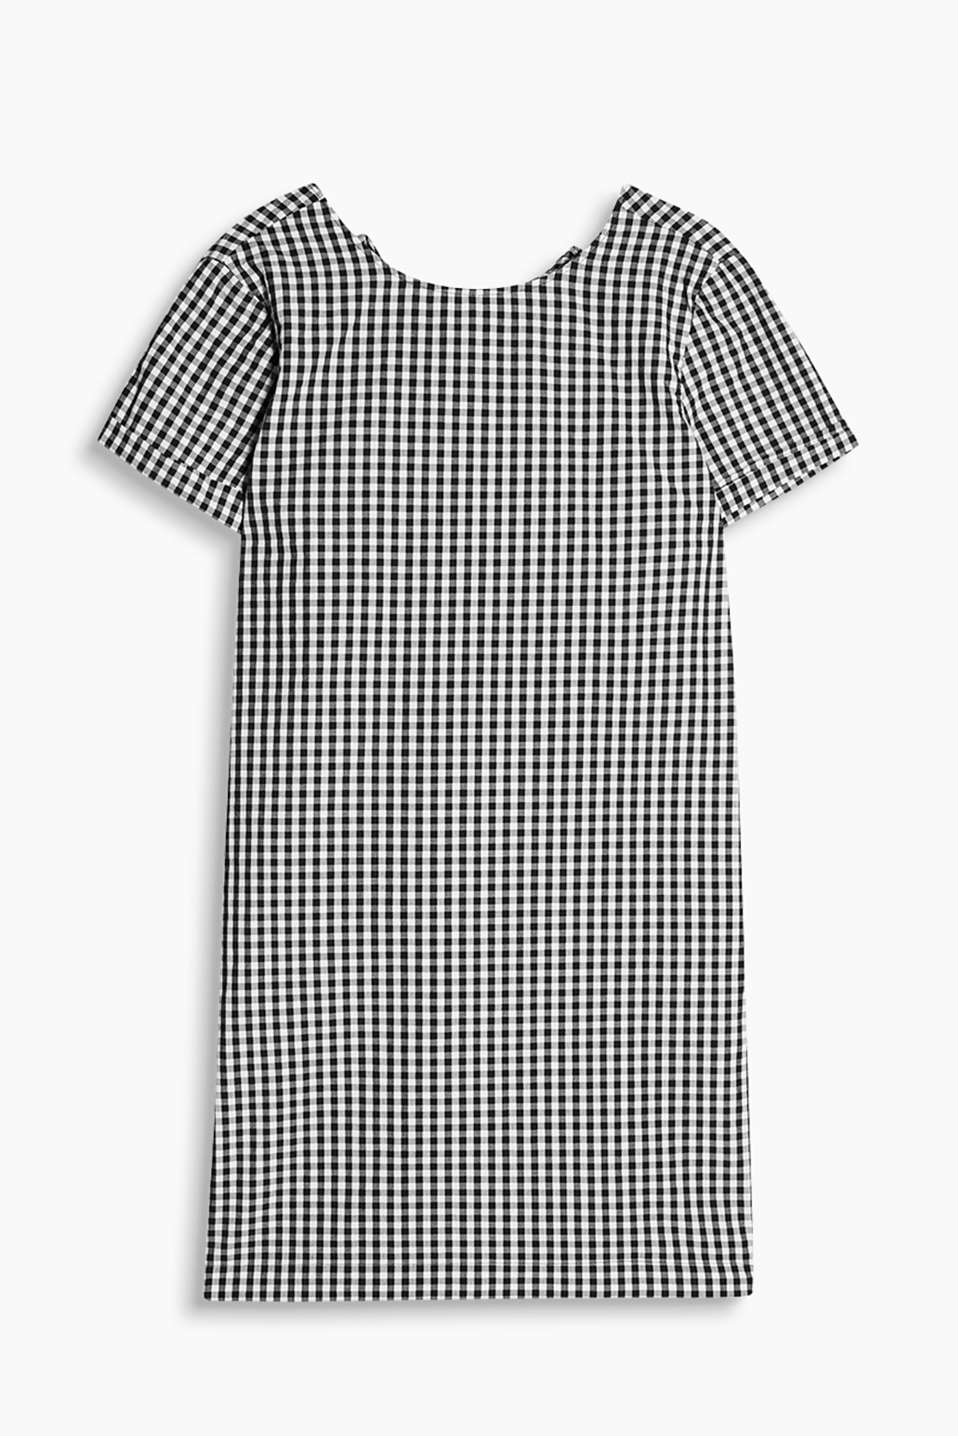 Straight cut dress with a lace-up back neckline and fresh gingham checks